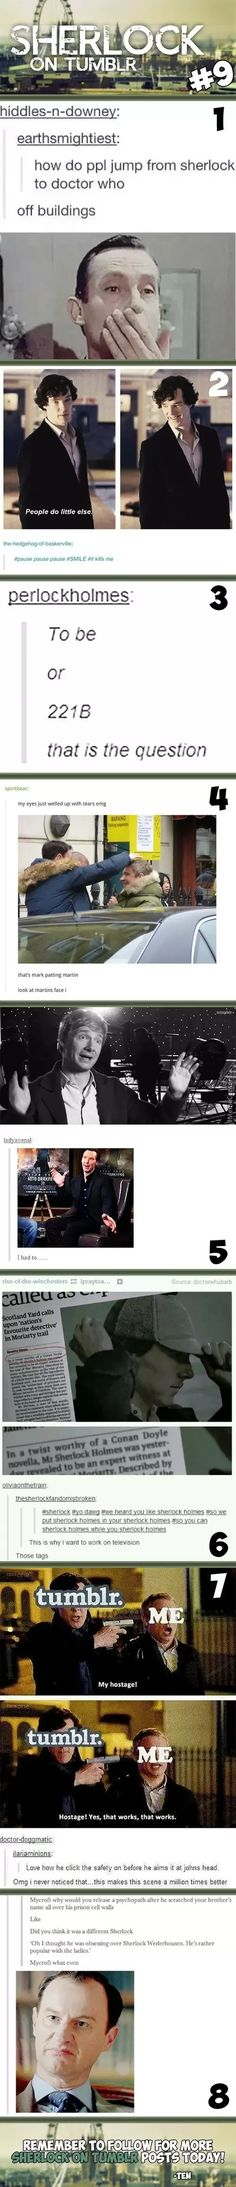 Sherlock On Tumblr #9